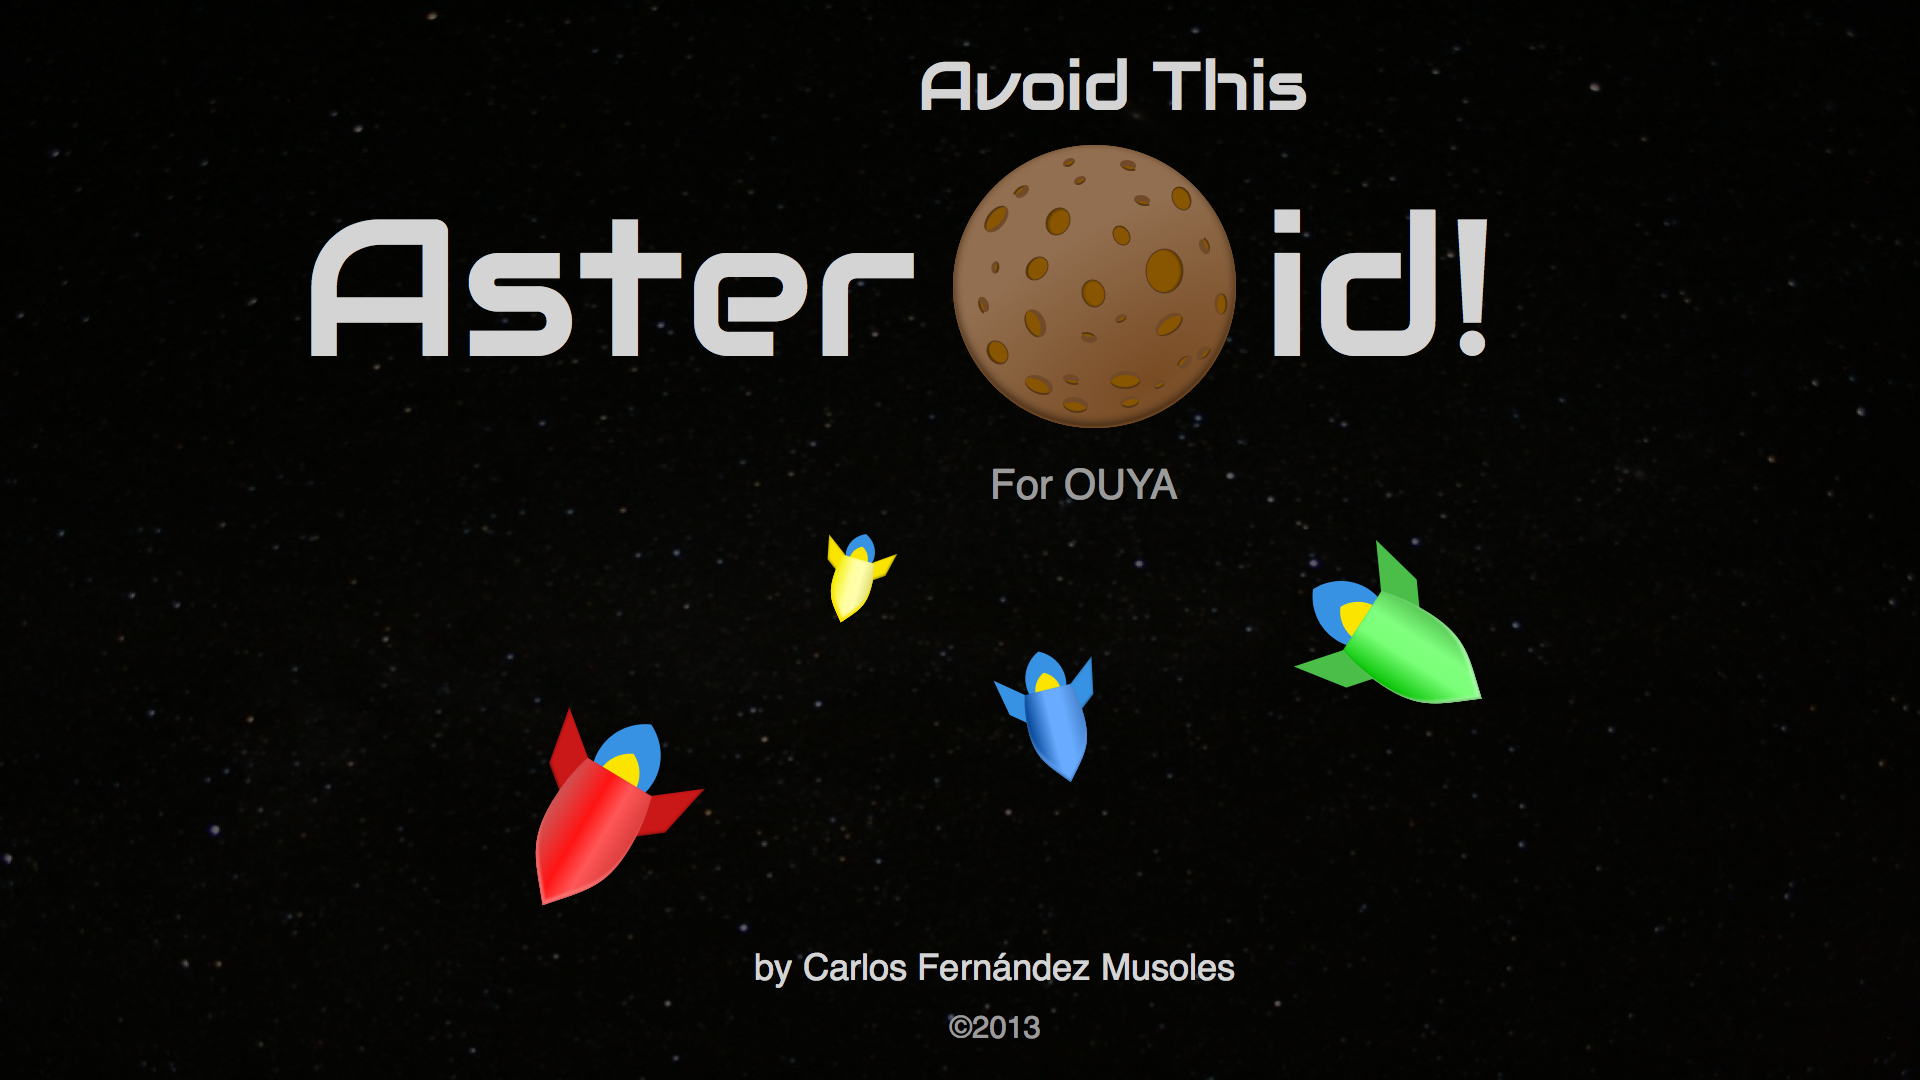 Screenshot of Avoid This Asteroid!